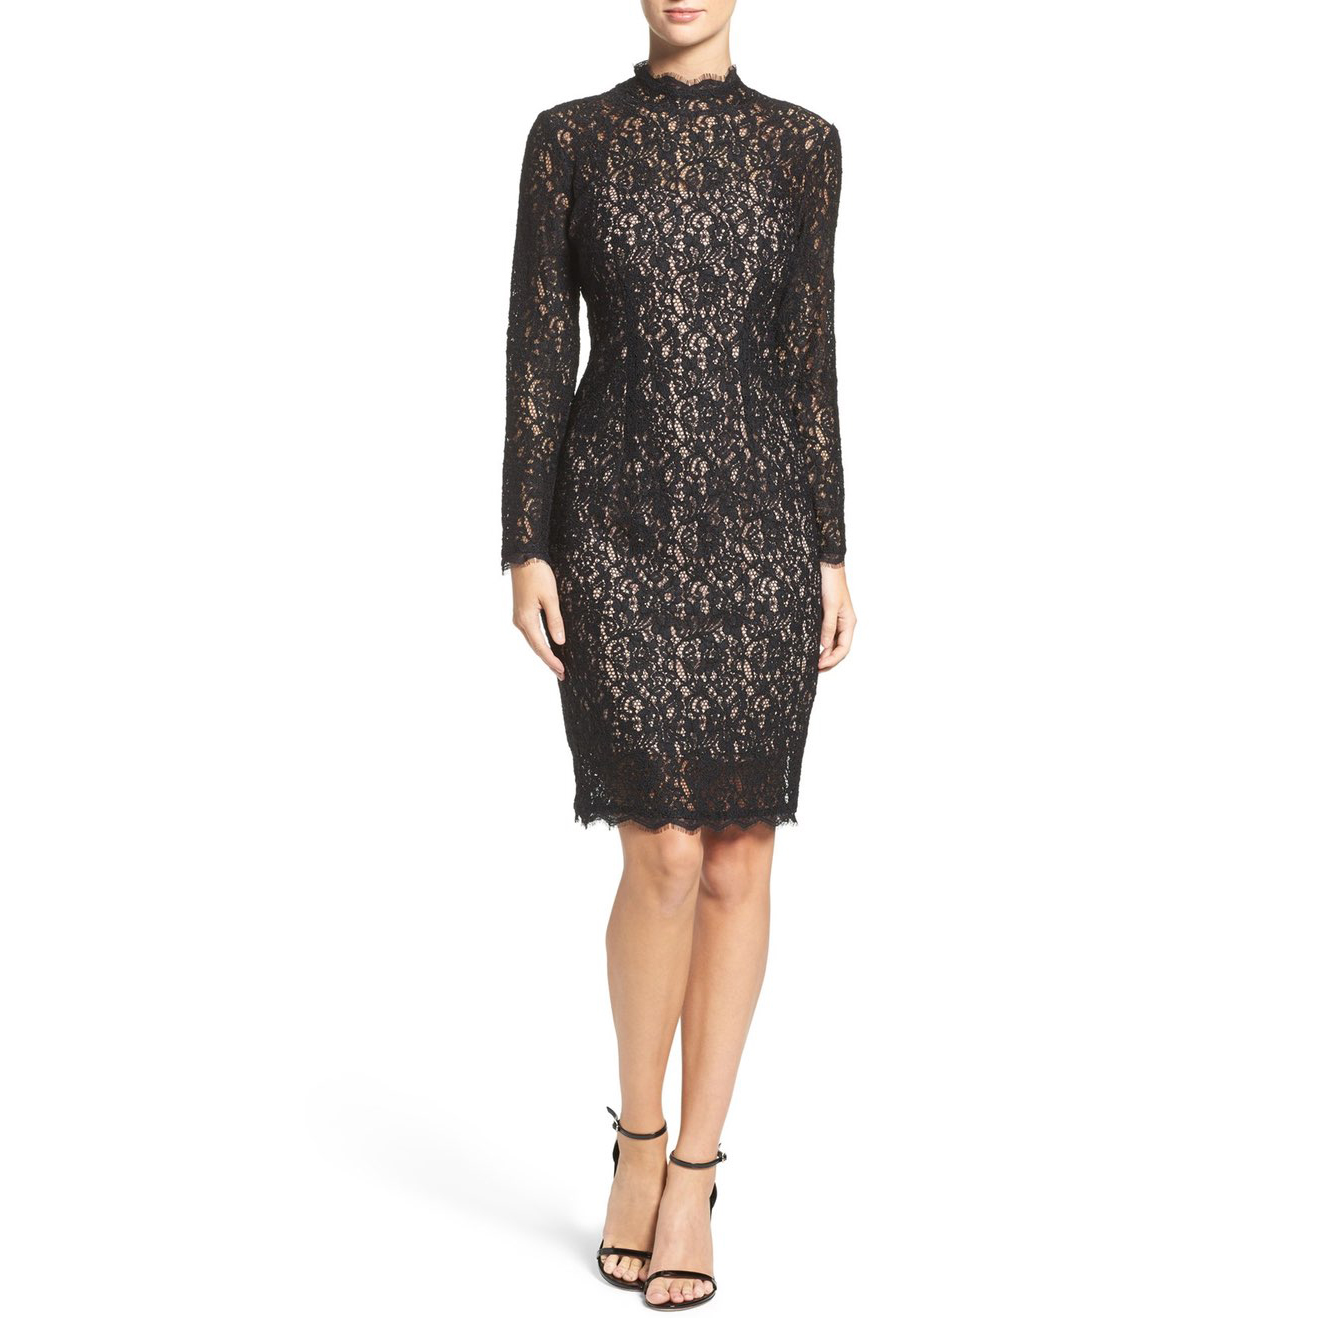 Adrianna Papell Corded Lace Sheath Dress